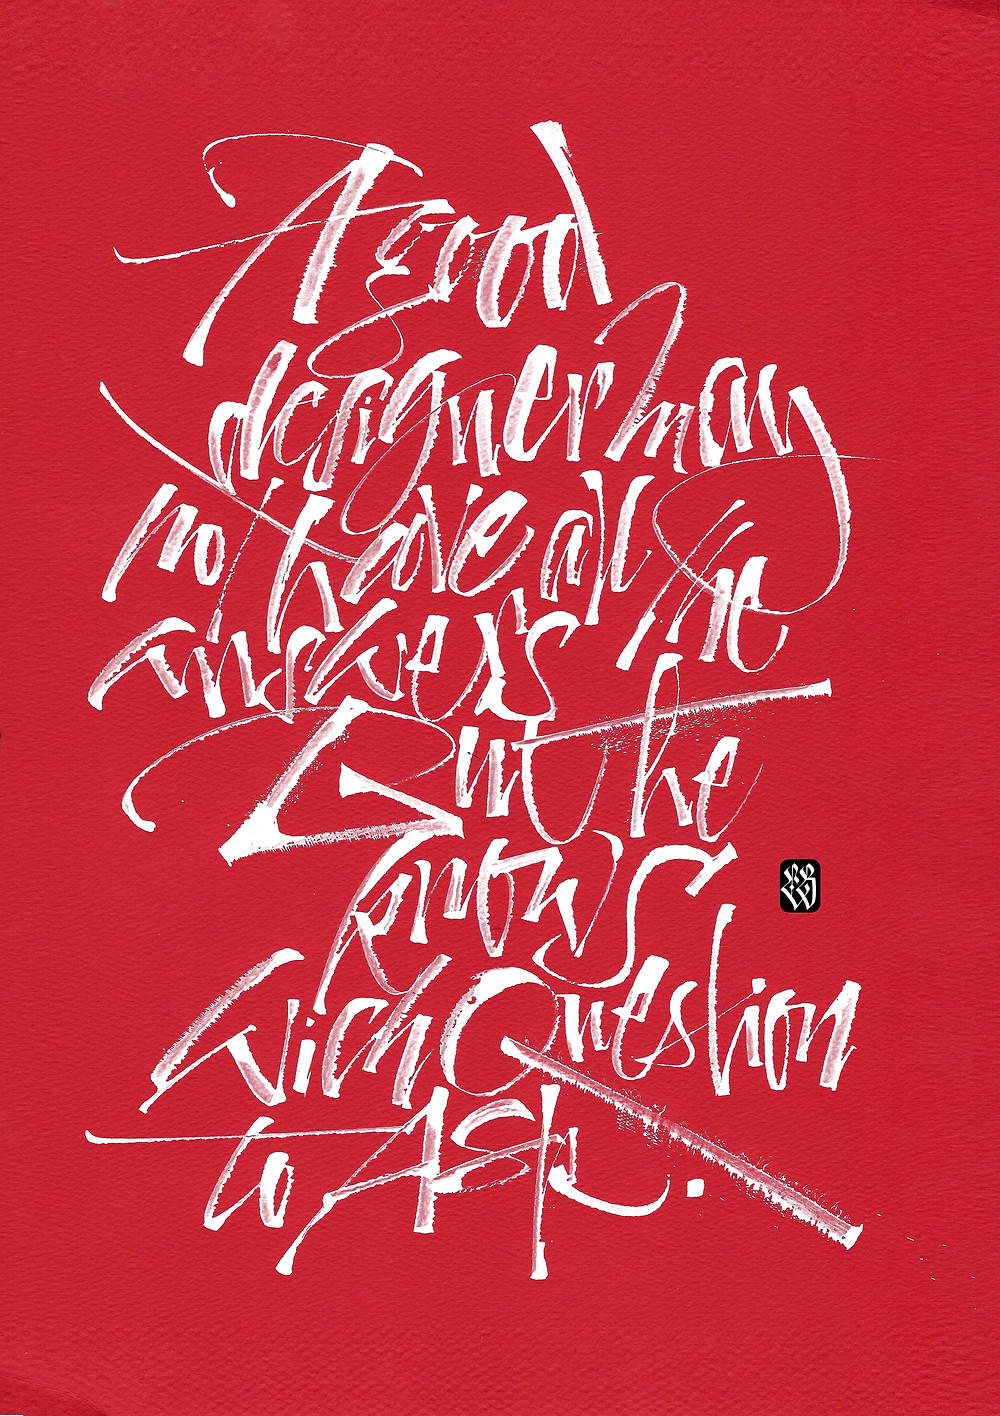 calligraphic works by Luca Barcellona